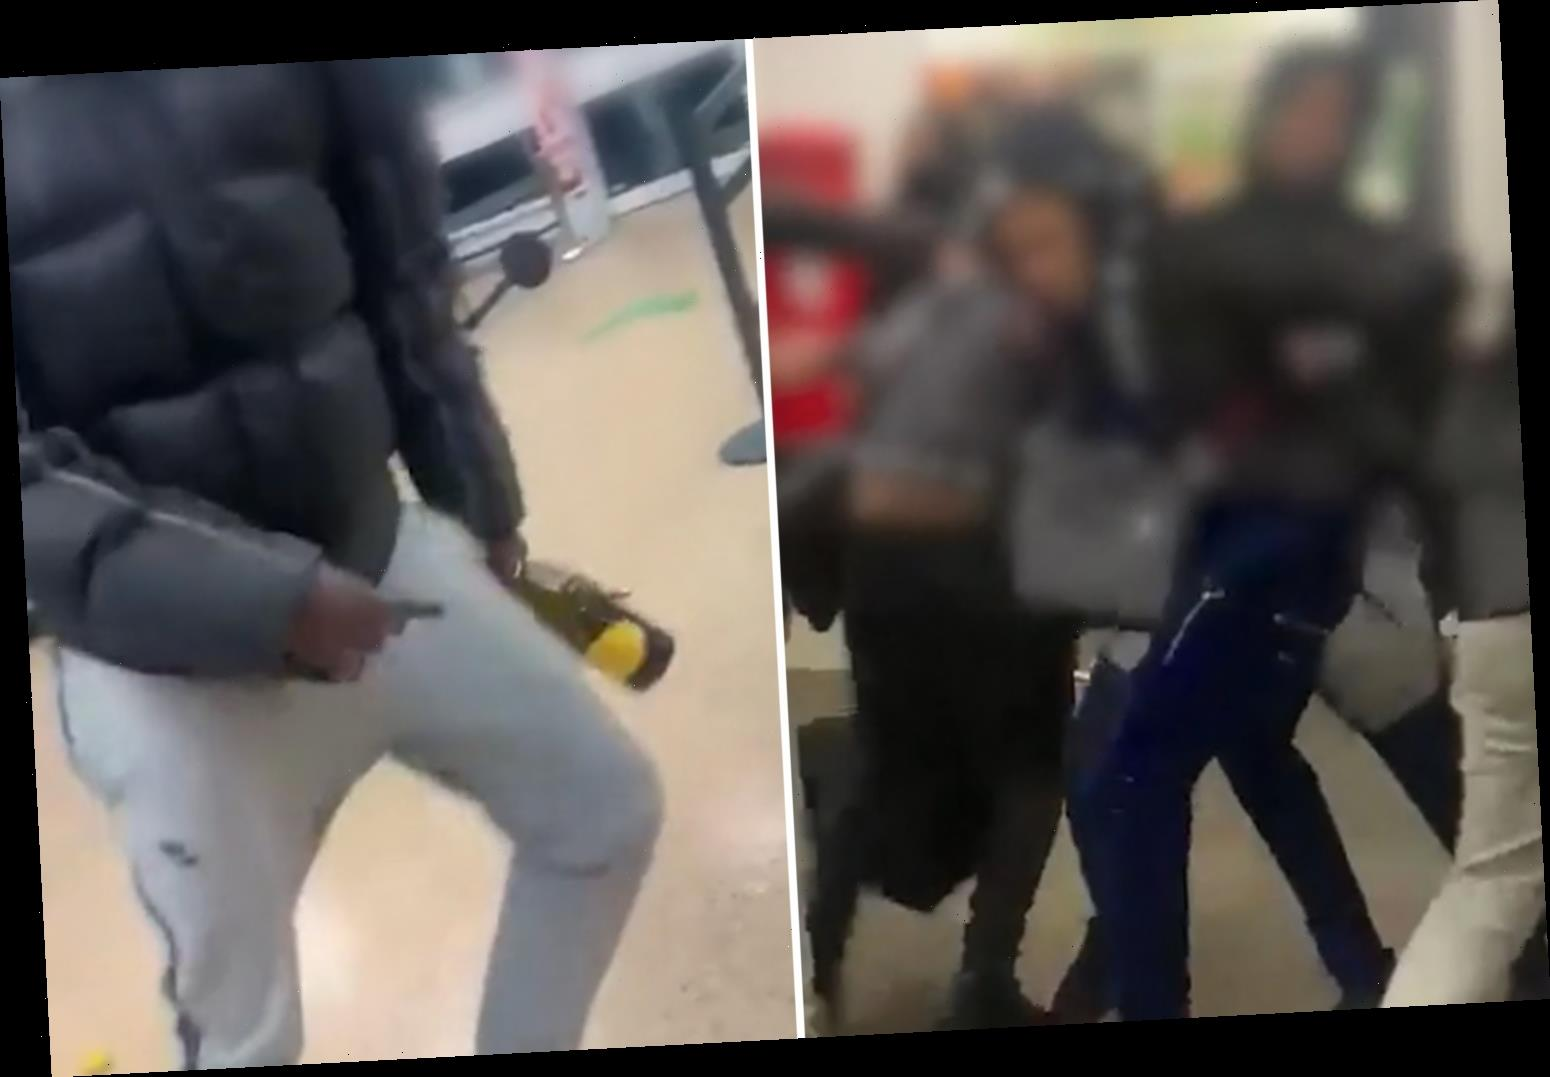 Asda yobs brawl & smash champagne bottles on each other in shocking rampage